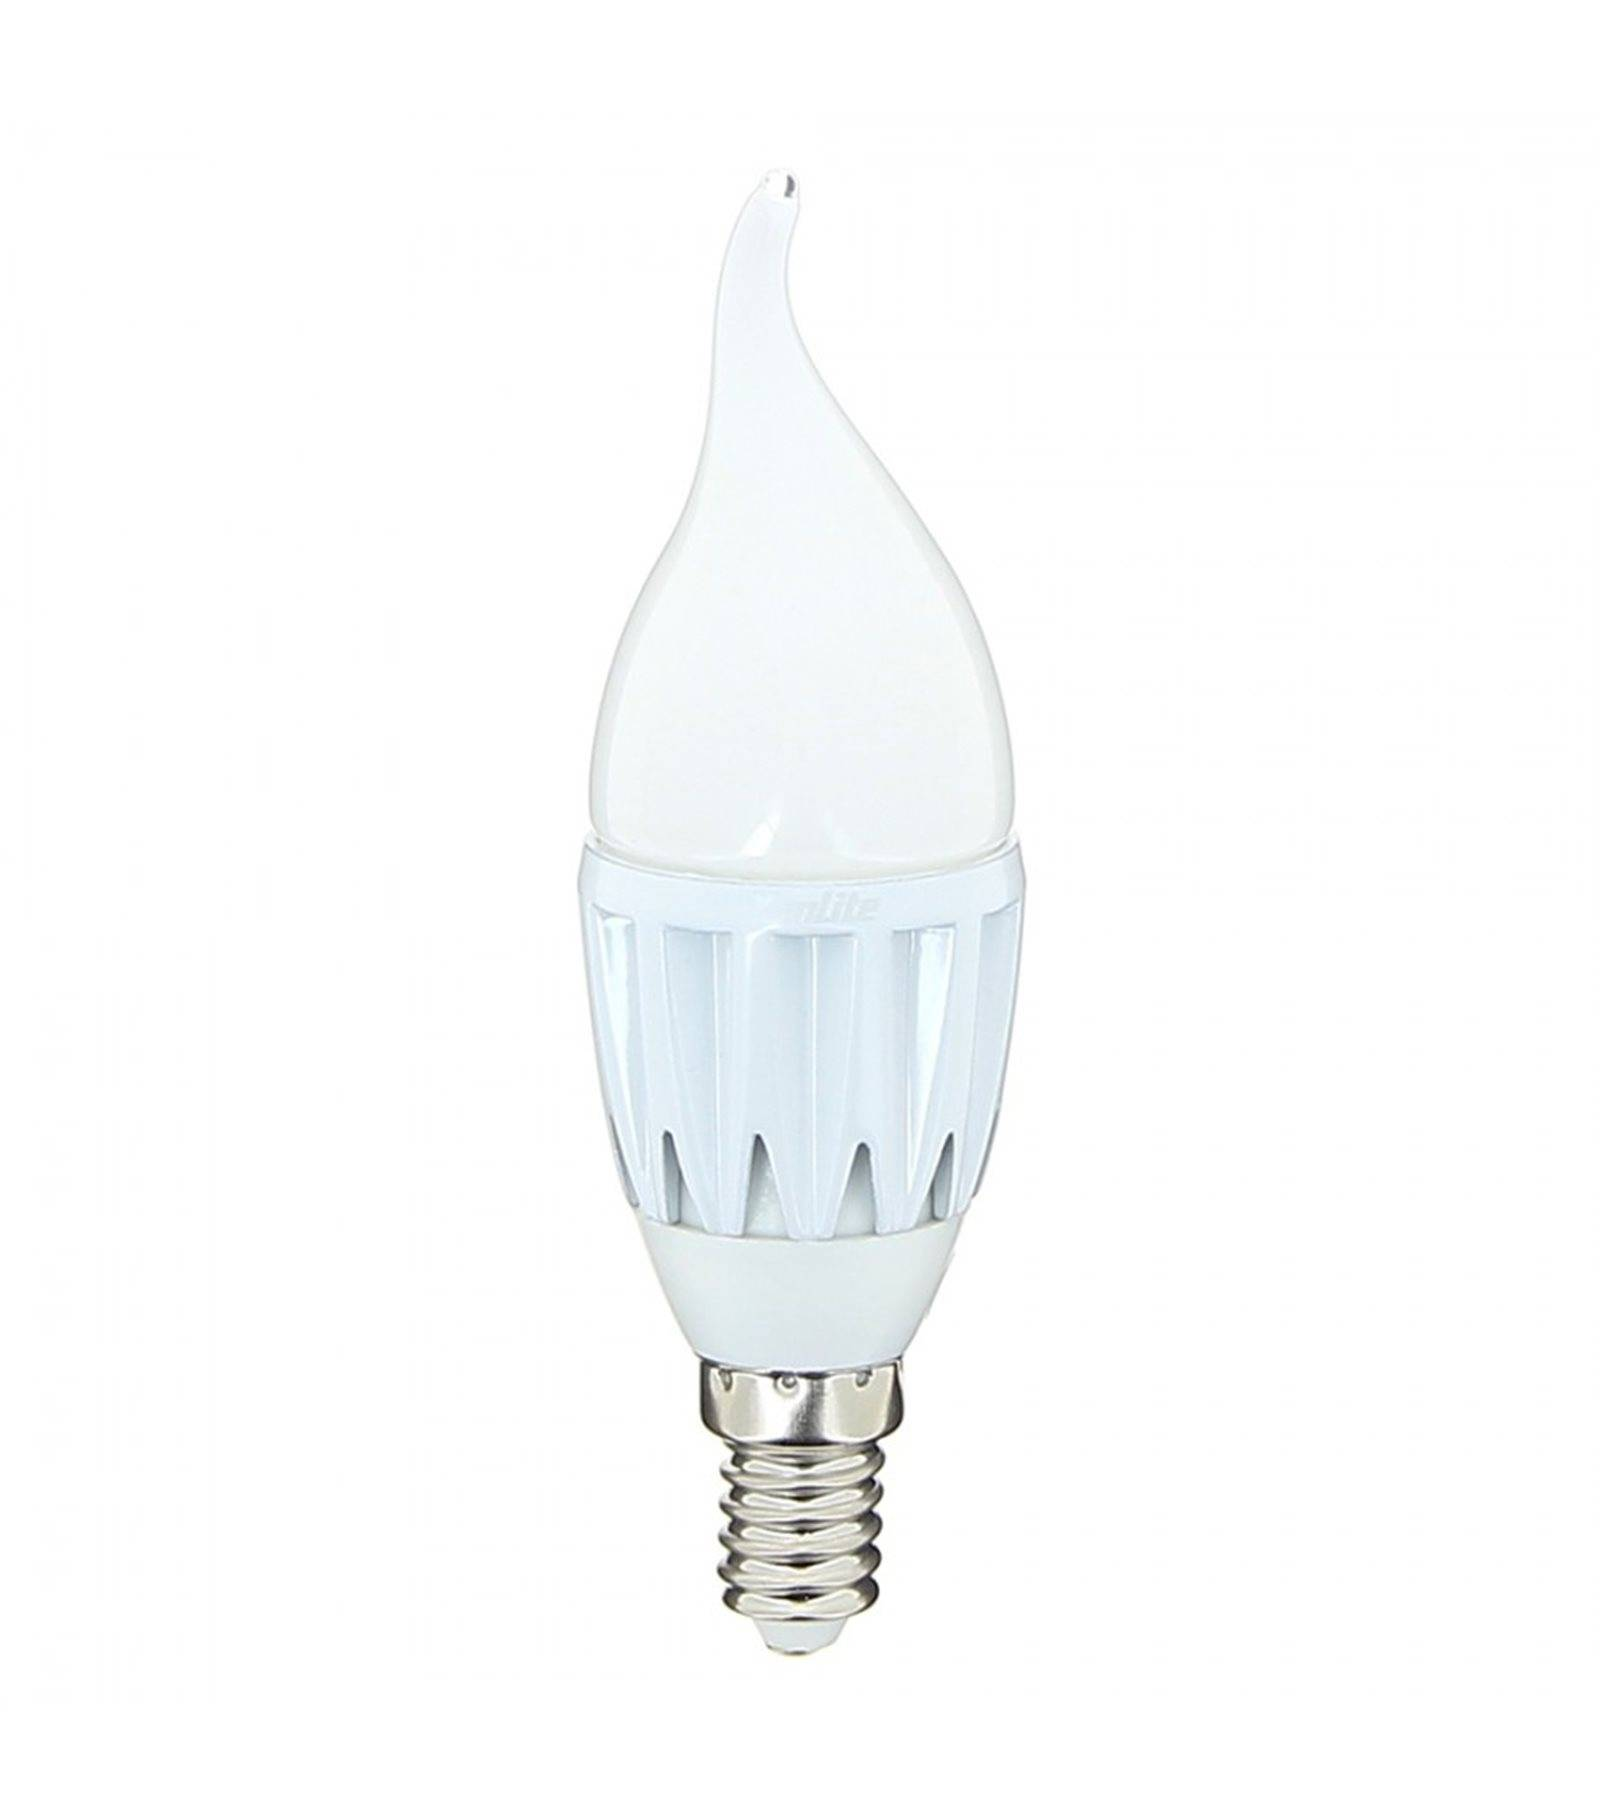 Ampoule Led E14 6w Destockage Ampoule Led E14 Flamme Smd 4 6w 323lm équiv